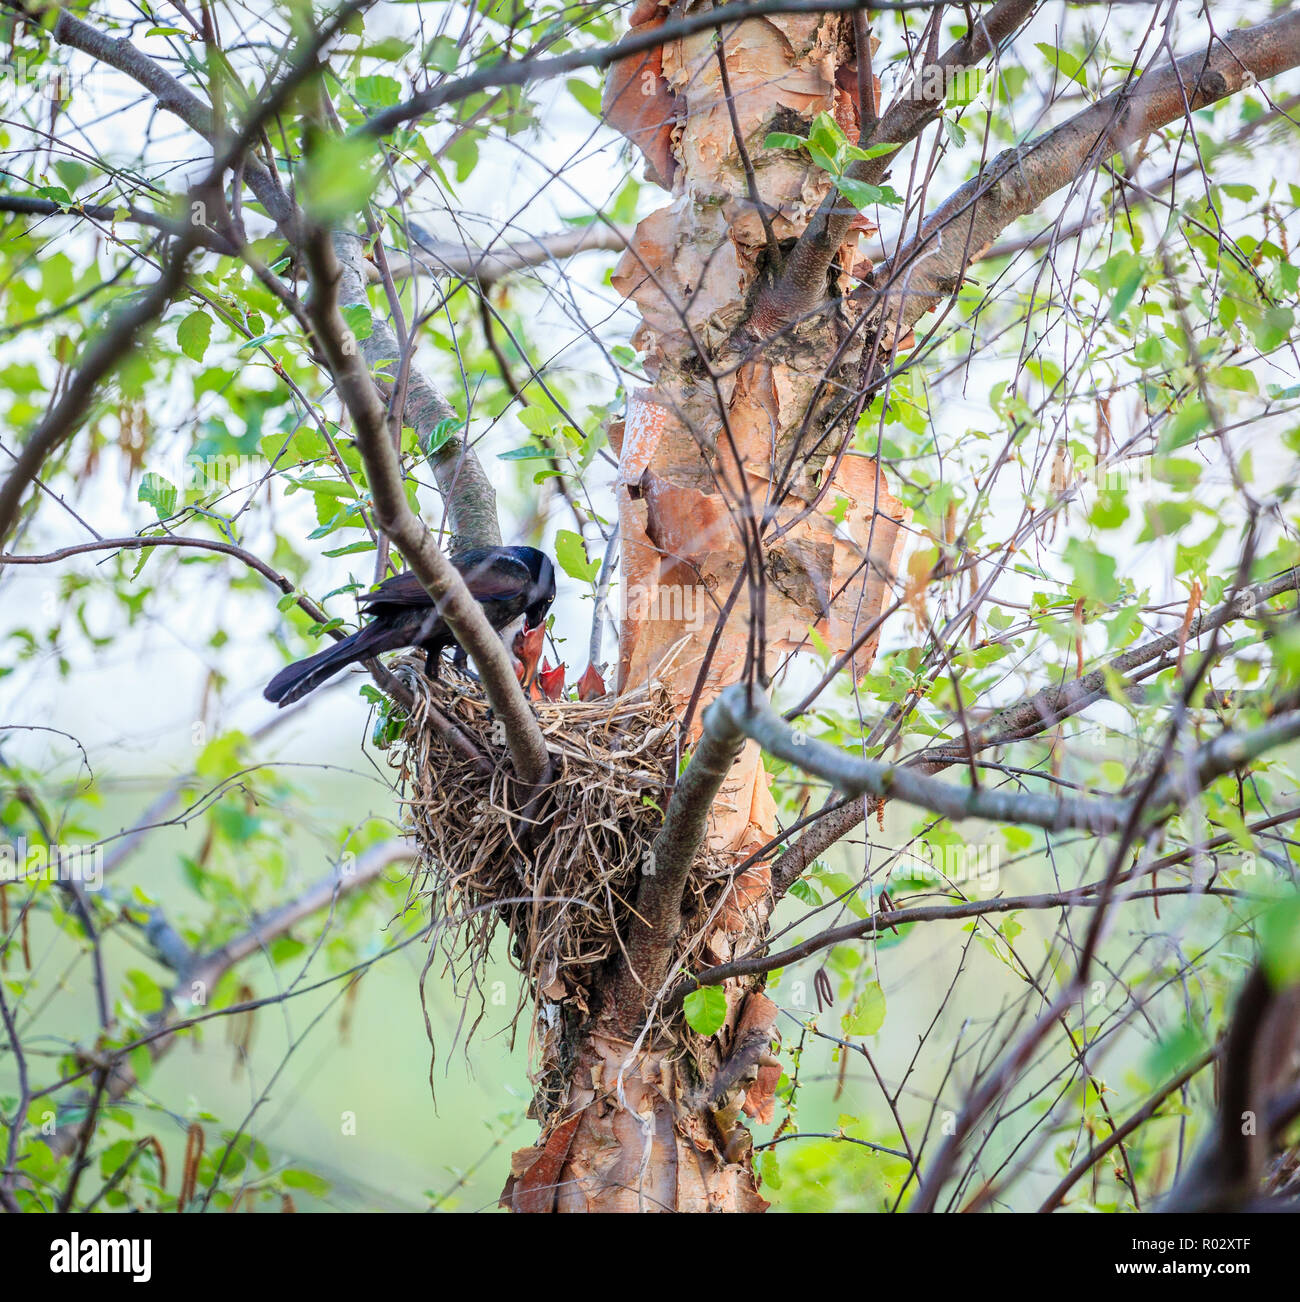 A bird feeding its hatchlings in the nest - Stock Image